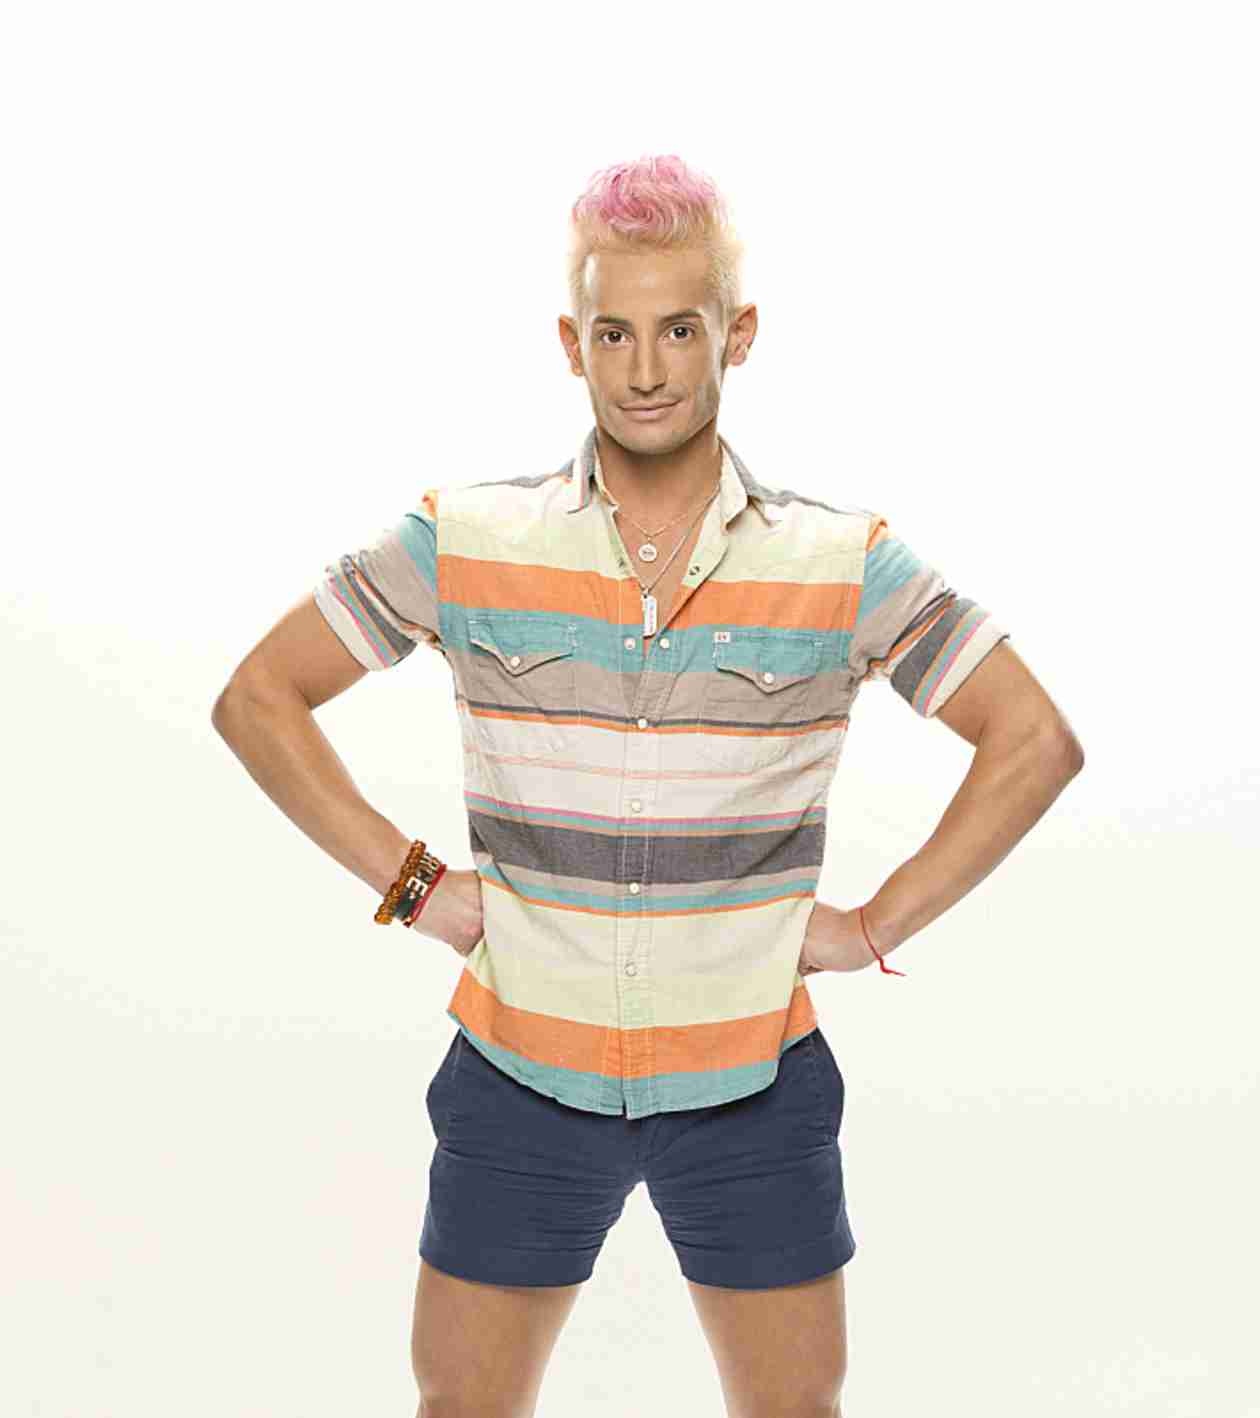 Big Brother 16 Spoiler: Frankie Grande Learns His Grandfather Died, Writes Eulogy (VIDEO)